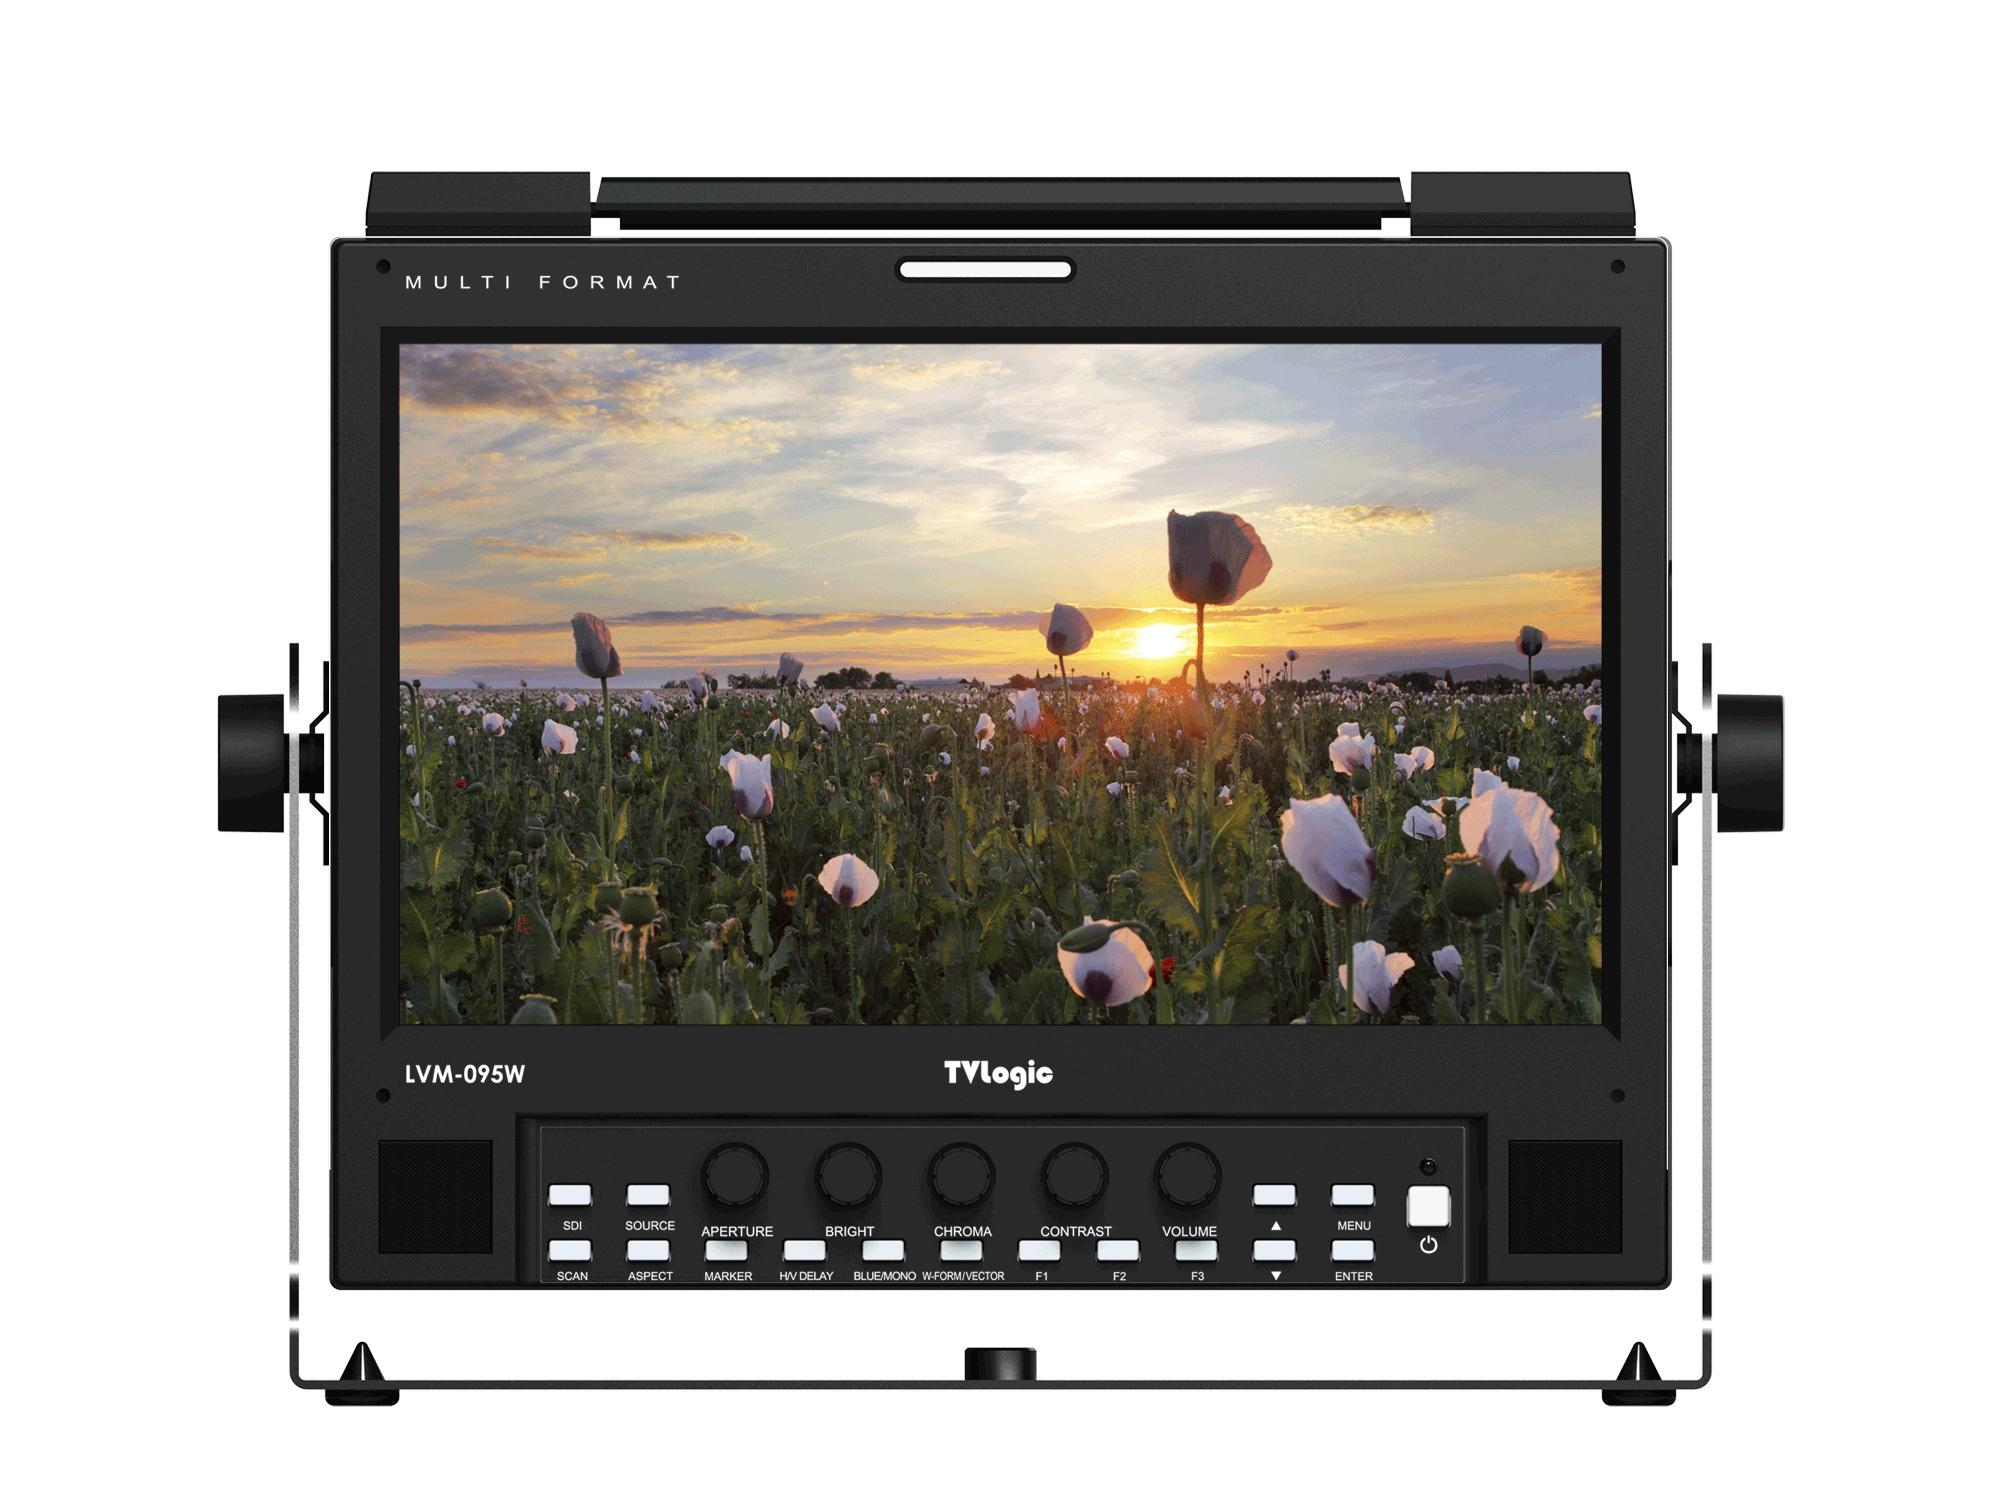 TVlogic LVM-095W-N 9 inch 1920x1080 FHD Multi-purpose 3G-SDI/HDMI LCD Production Monitor